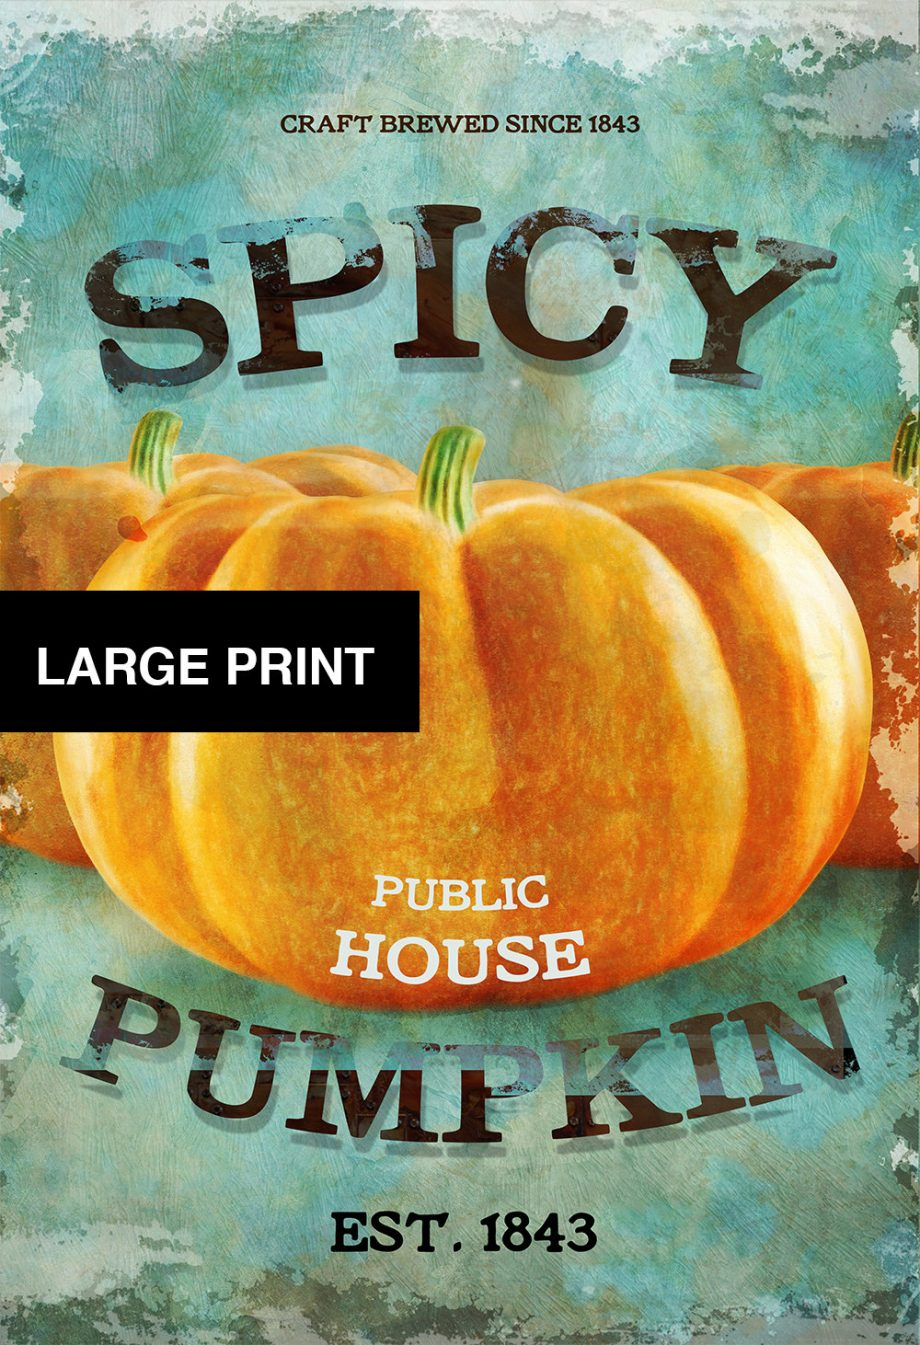 Spicy Pumpkin Public House Original Illustration Vintage Style Giclee Print  on Cotton Canvas and Satin Photo Paper